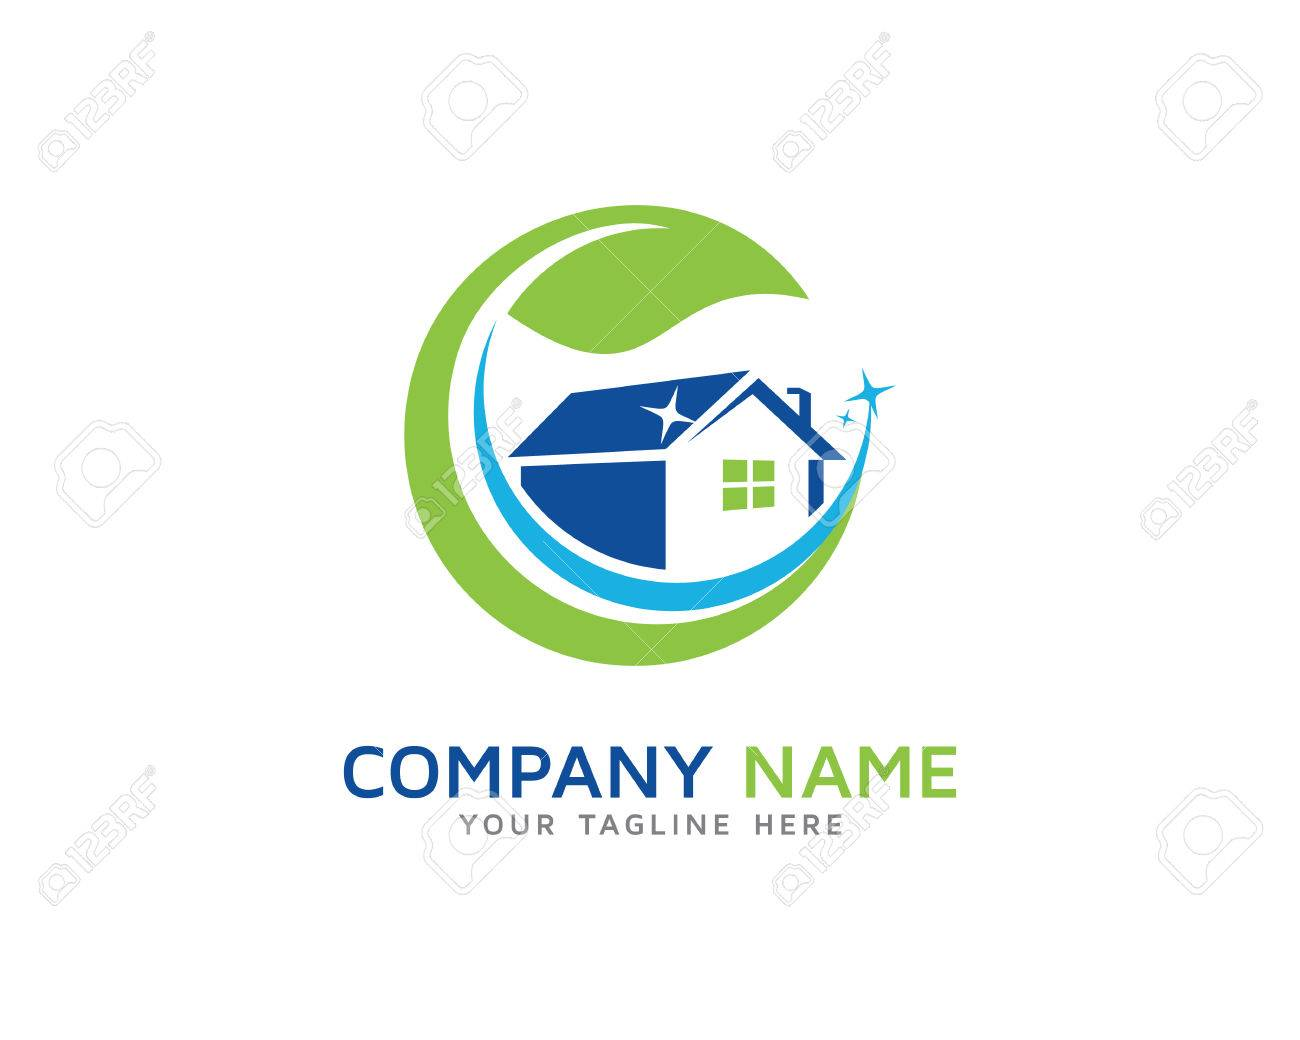 Home Cleaning Service Logo Royalty Free Cliparts Vectors And Stock Illustration Image 69775644